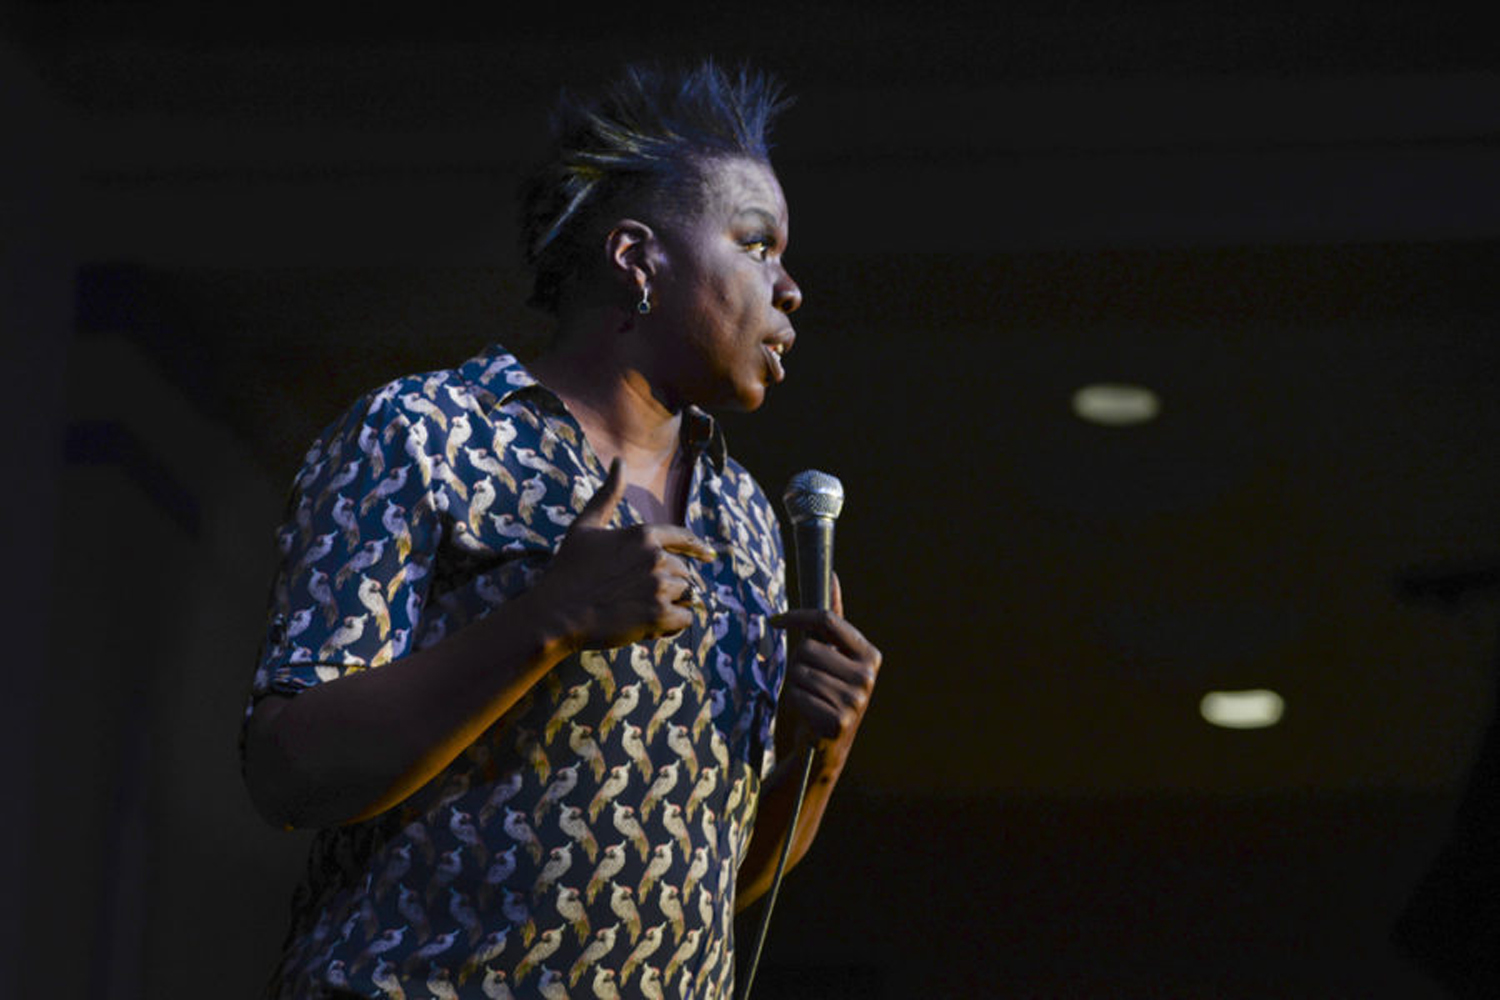 Leslie Jones performed at the first Women's Empowerment Week in March 2017.